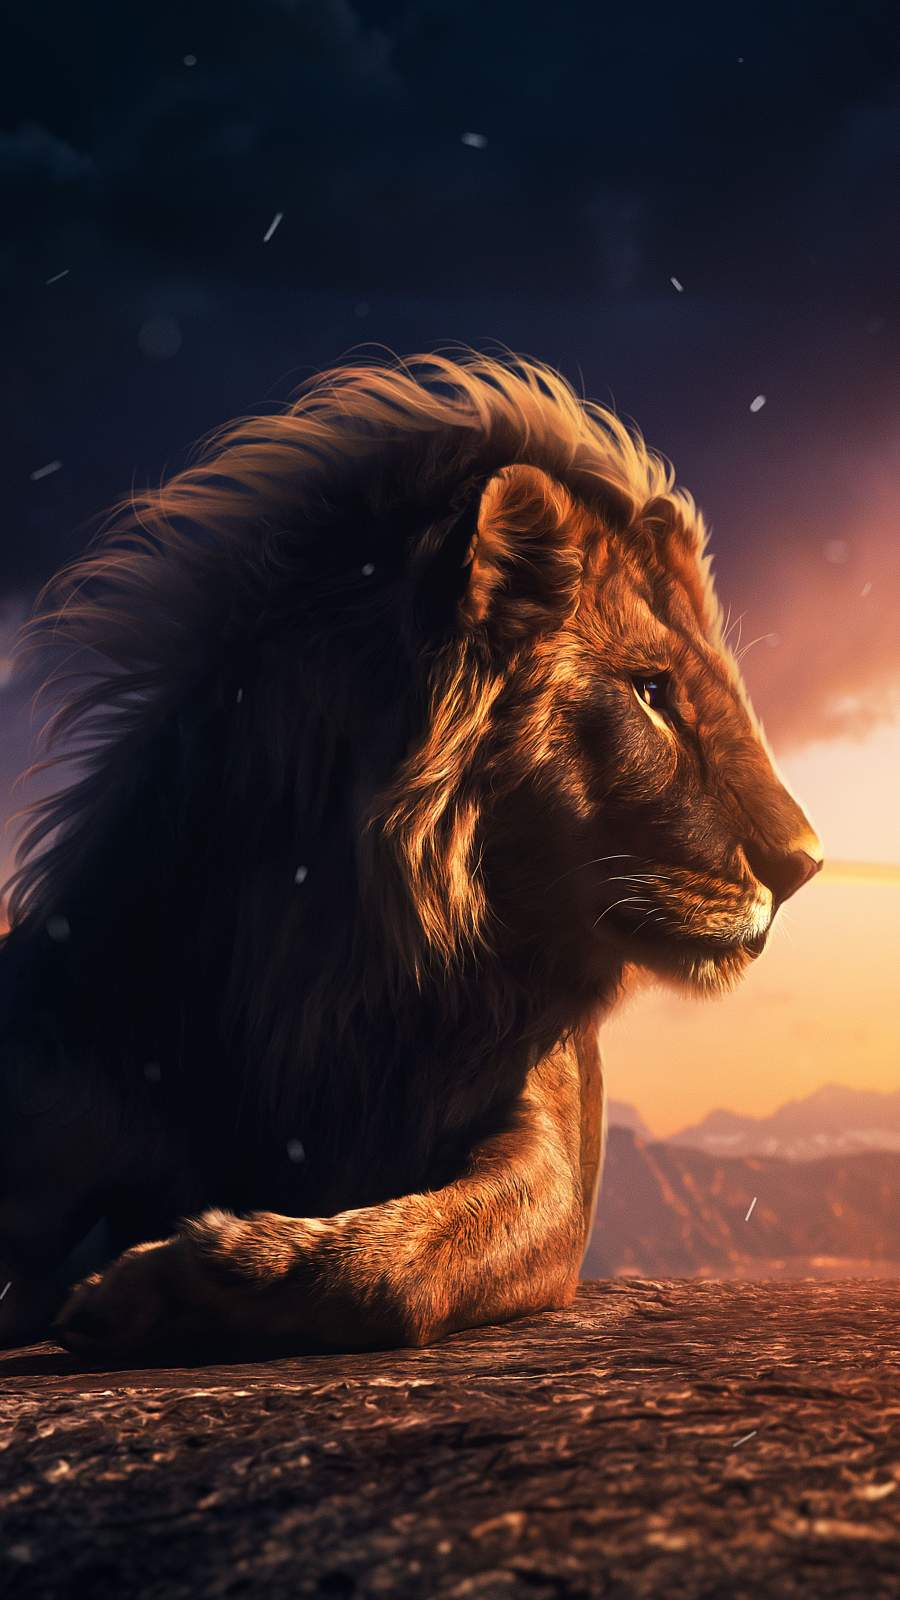 Lion King 4K iPhone Wallpaper